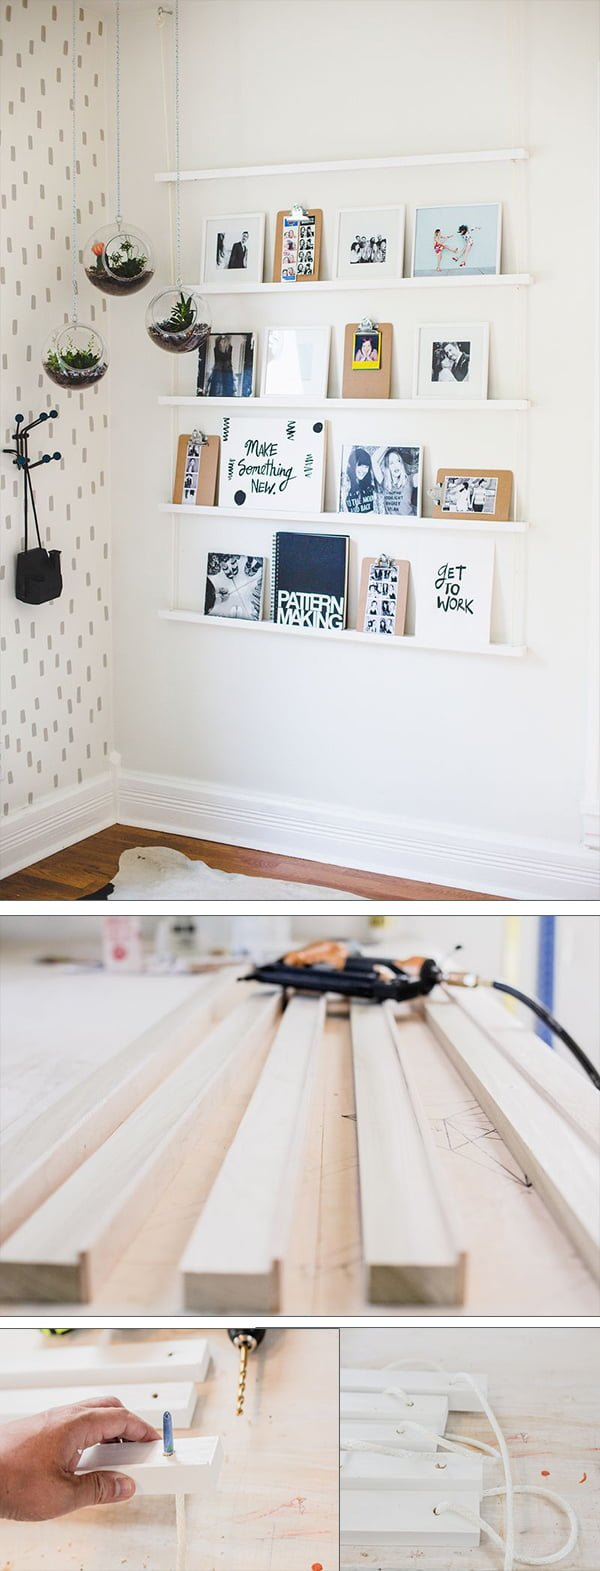 Check out the tutorial how to make easy DIY hanging rope shelving